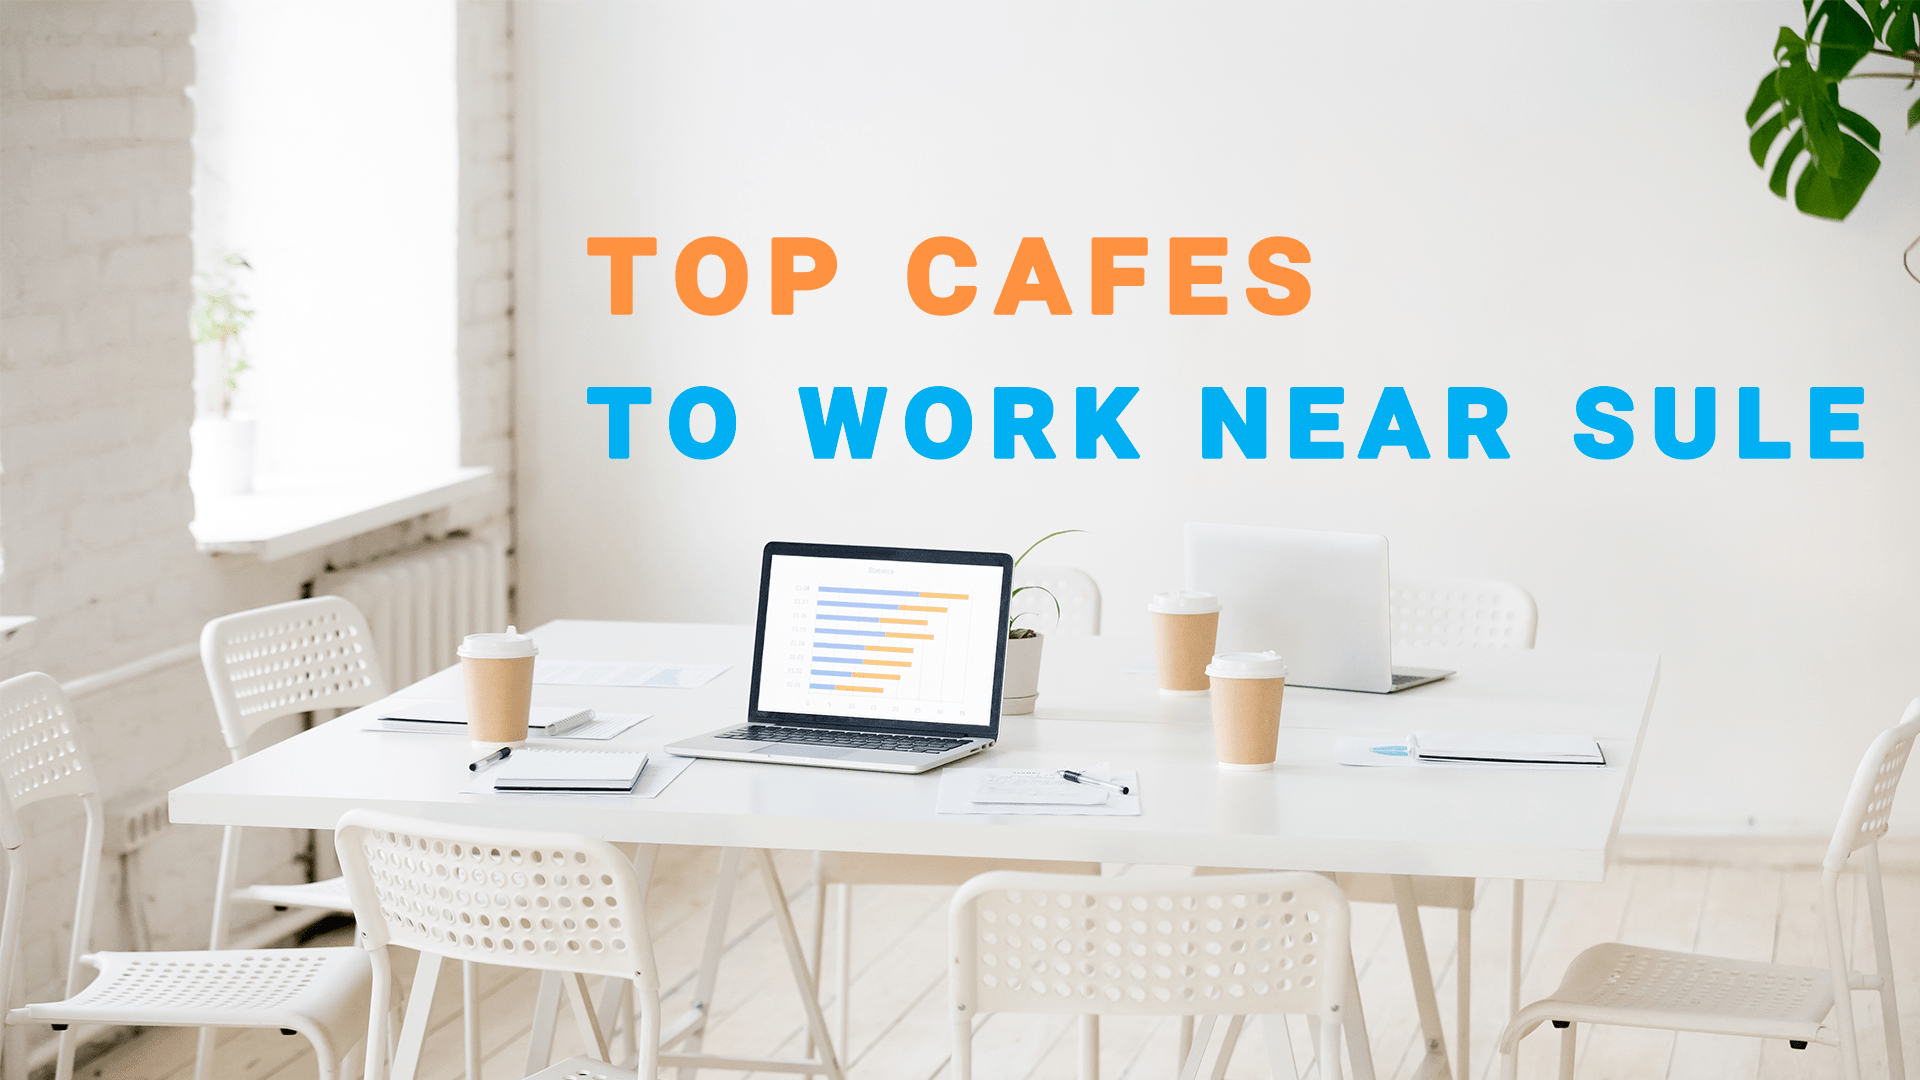 Top 5 Cafés To Work Near Sule | Read more blogs at New Day Jobs